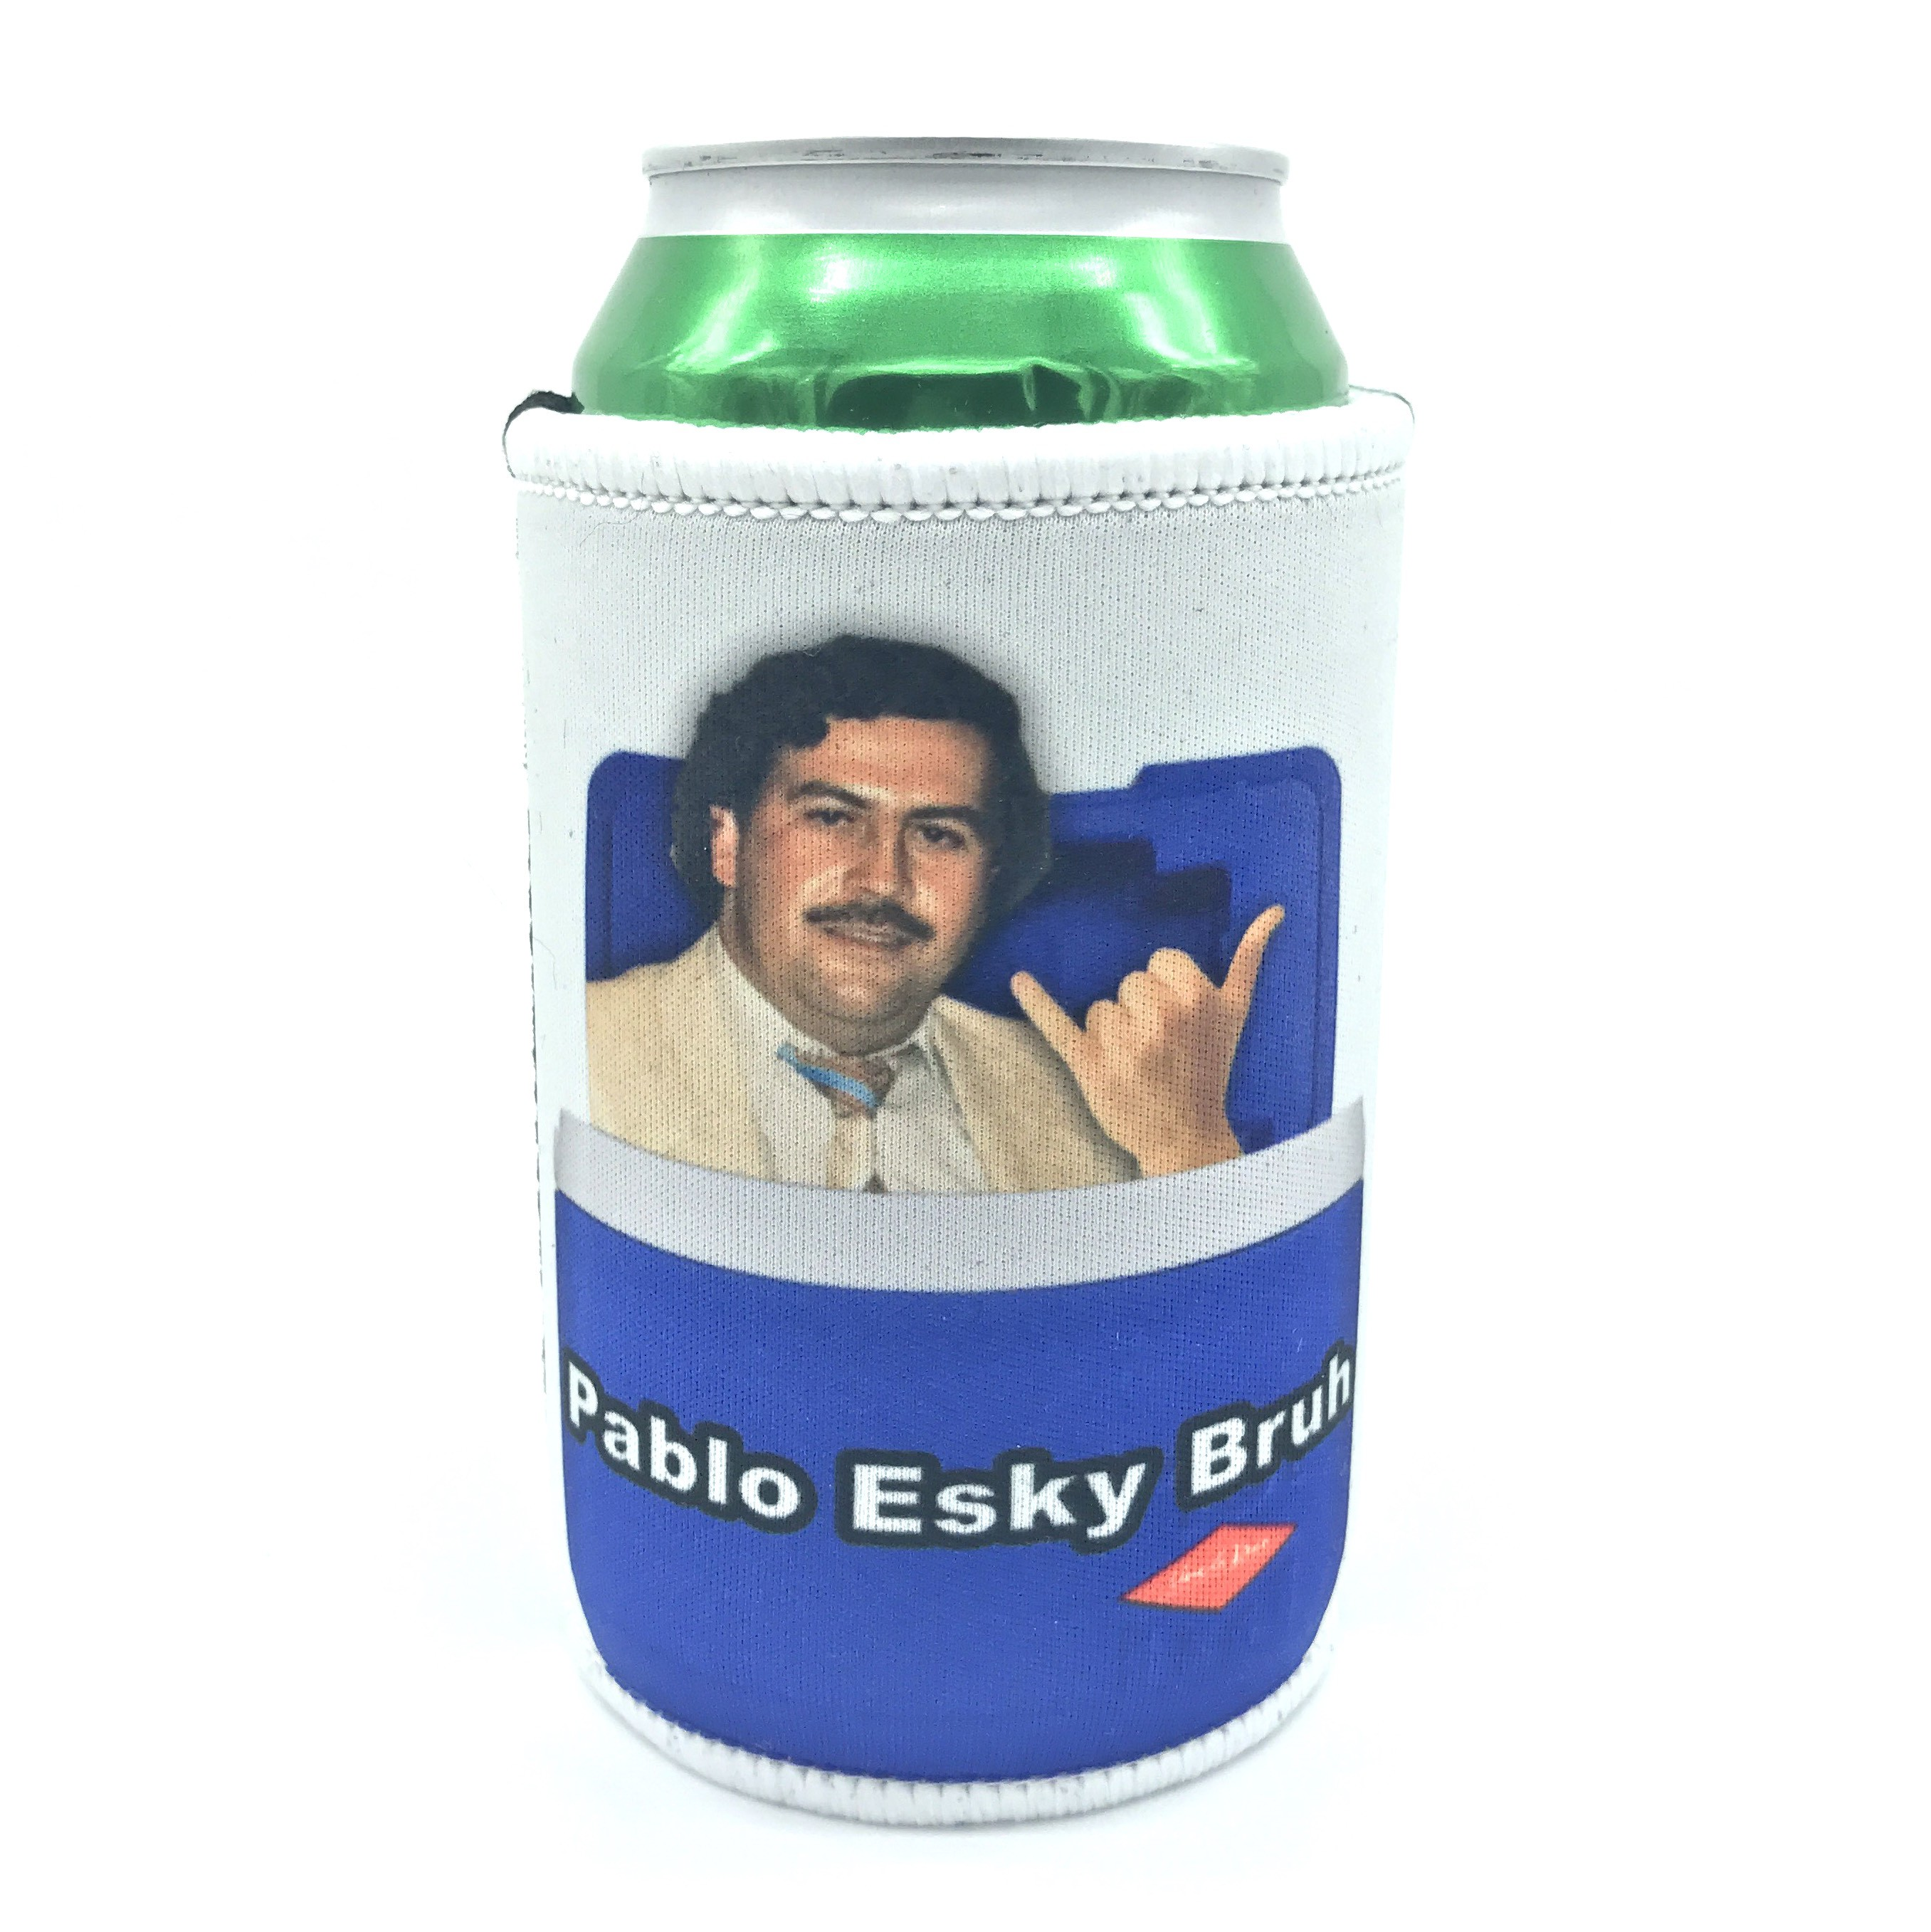 ESKYBRUH STUBBY HOLDER